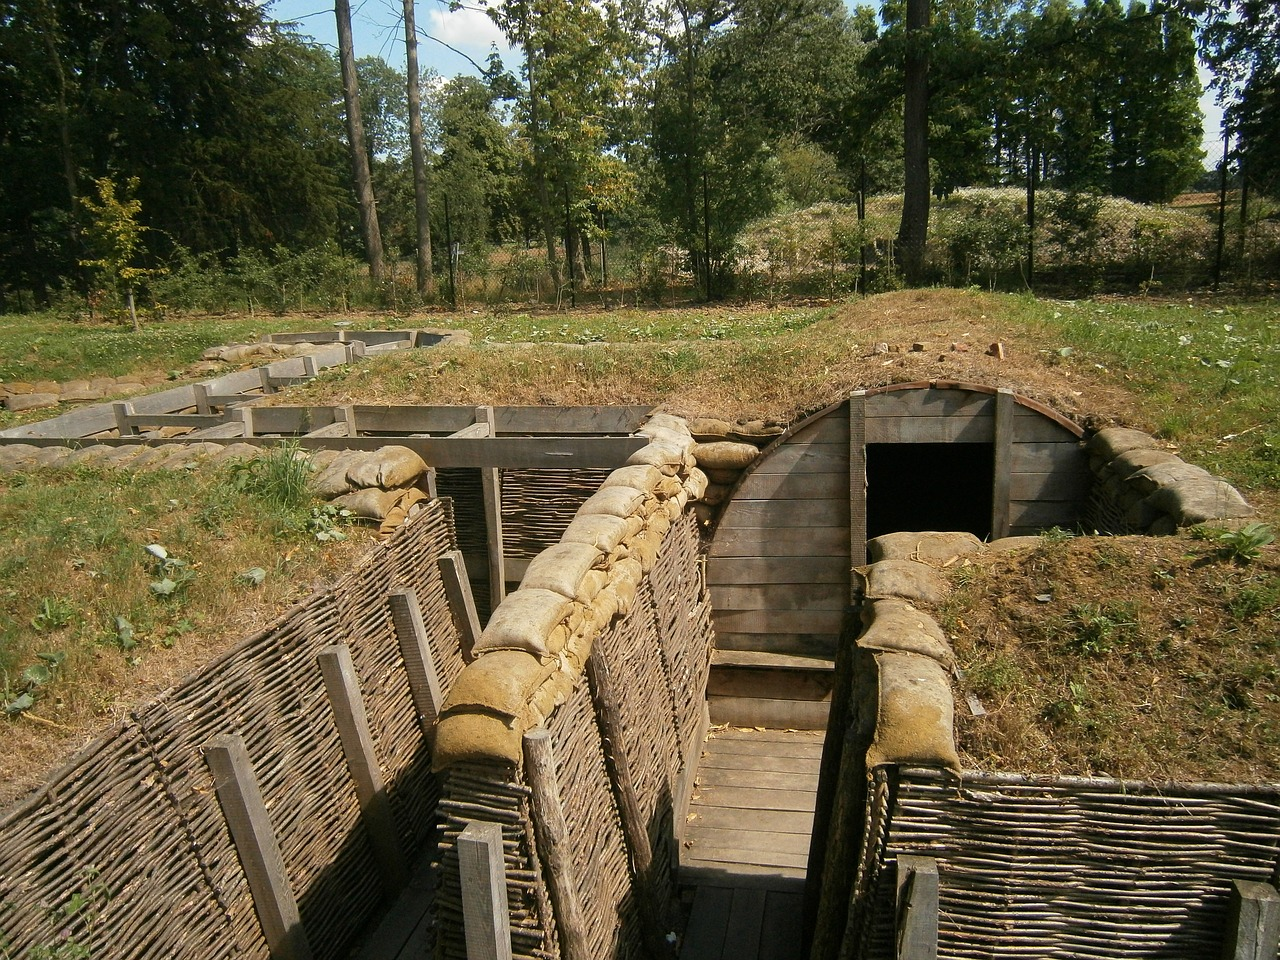 trench-1566795_1280